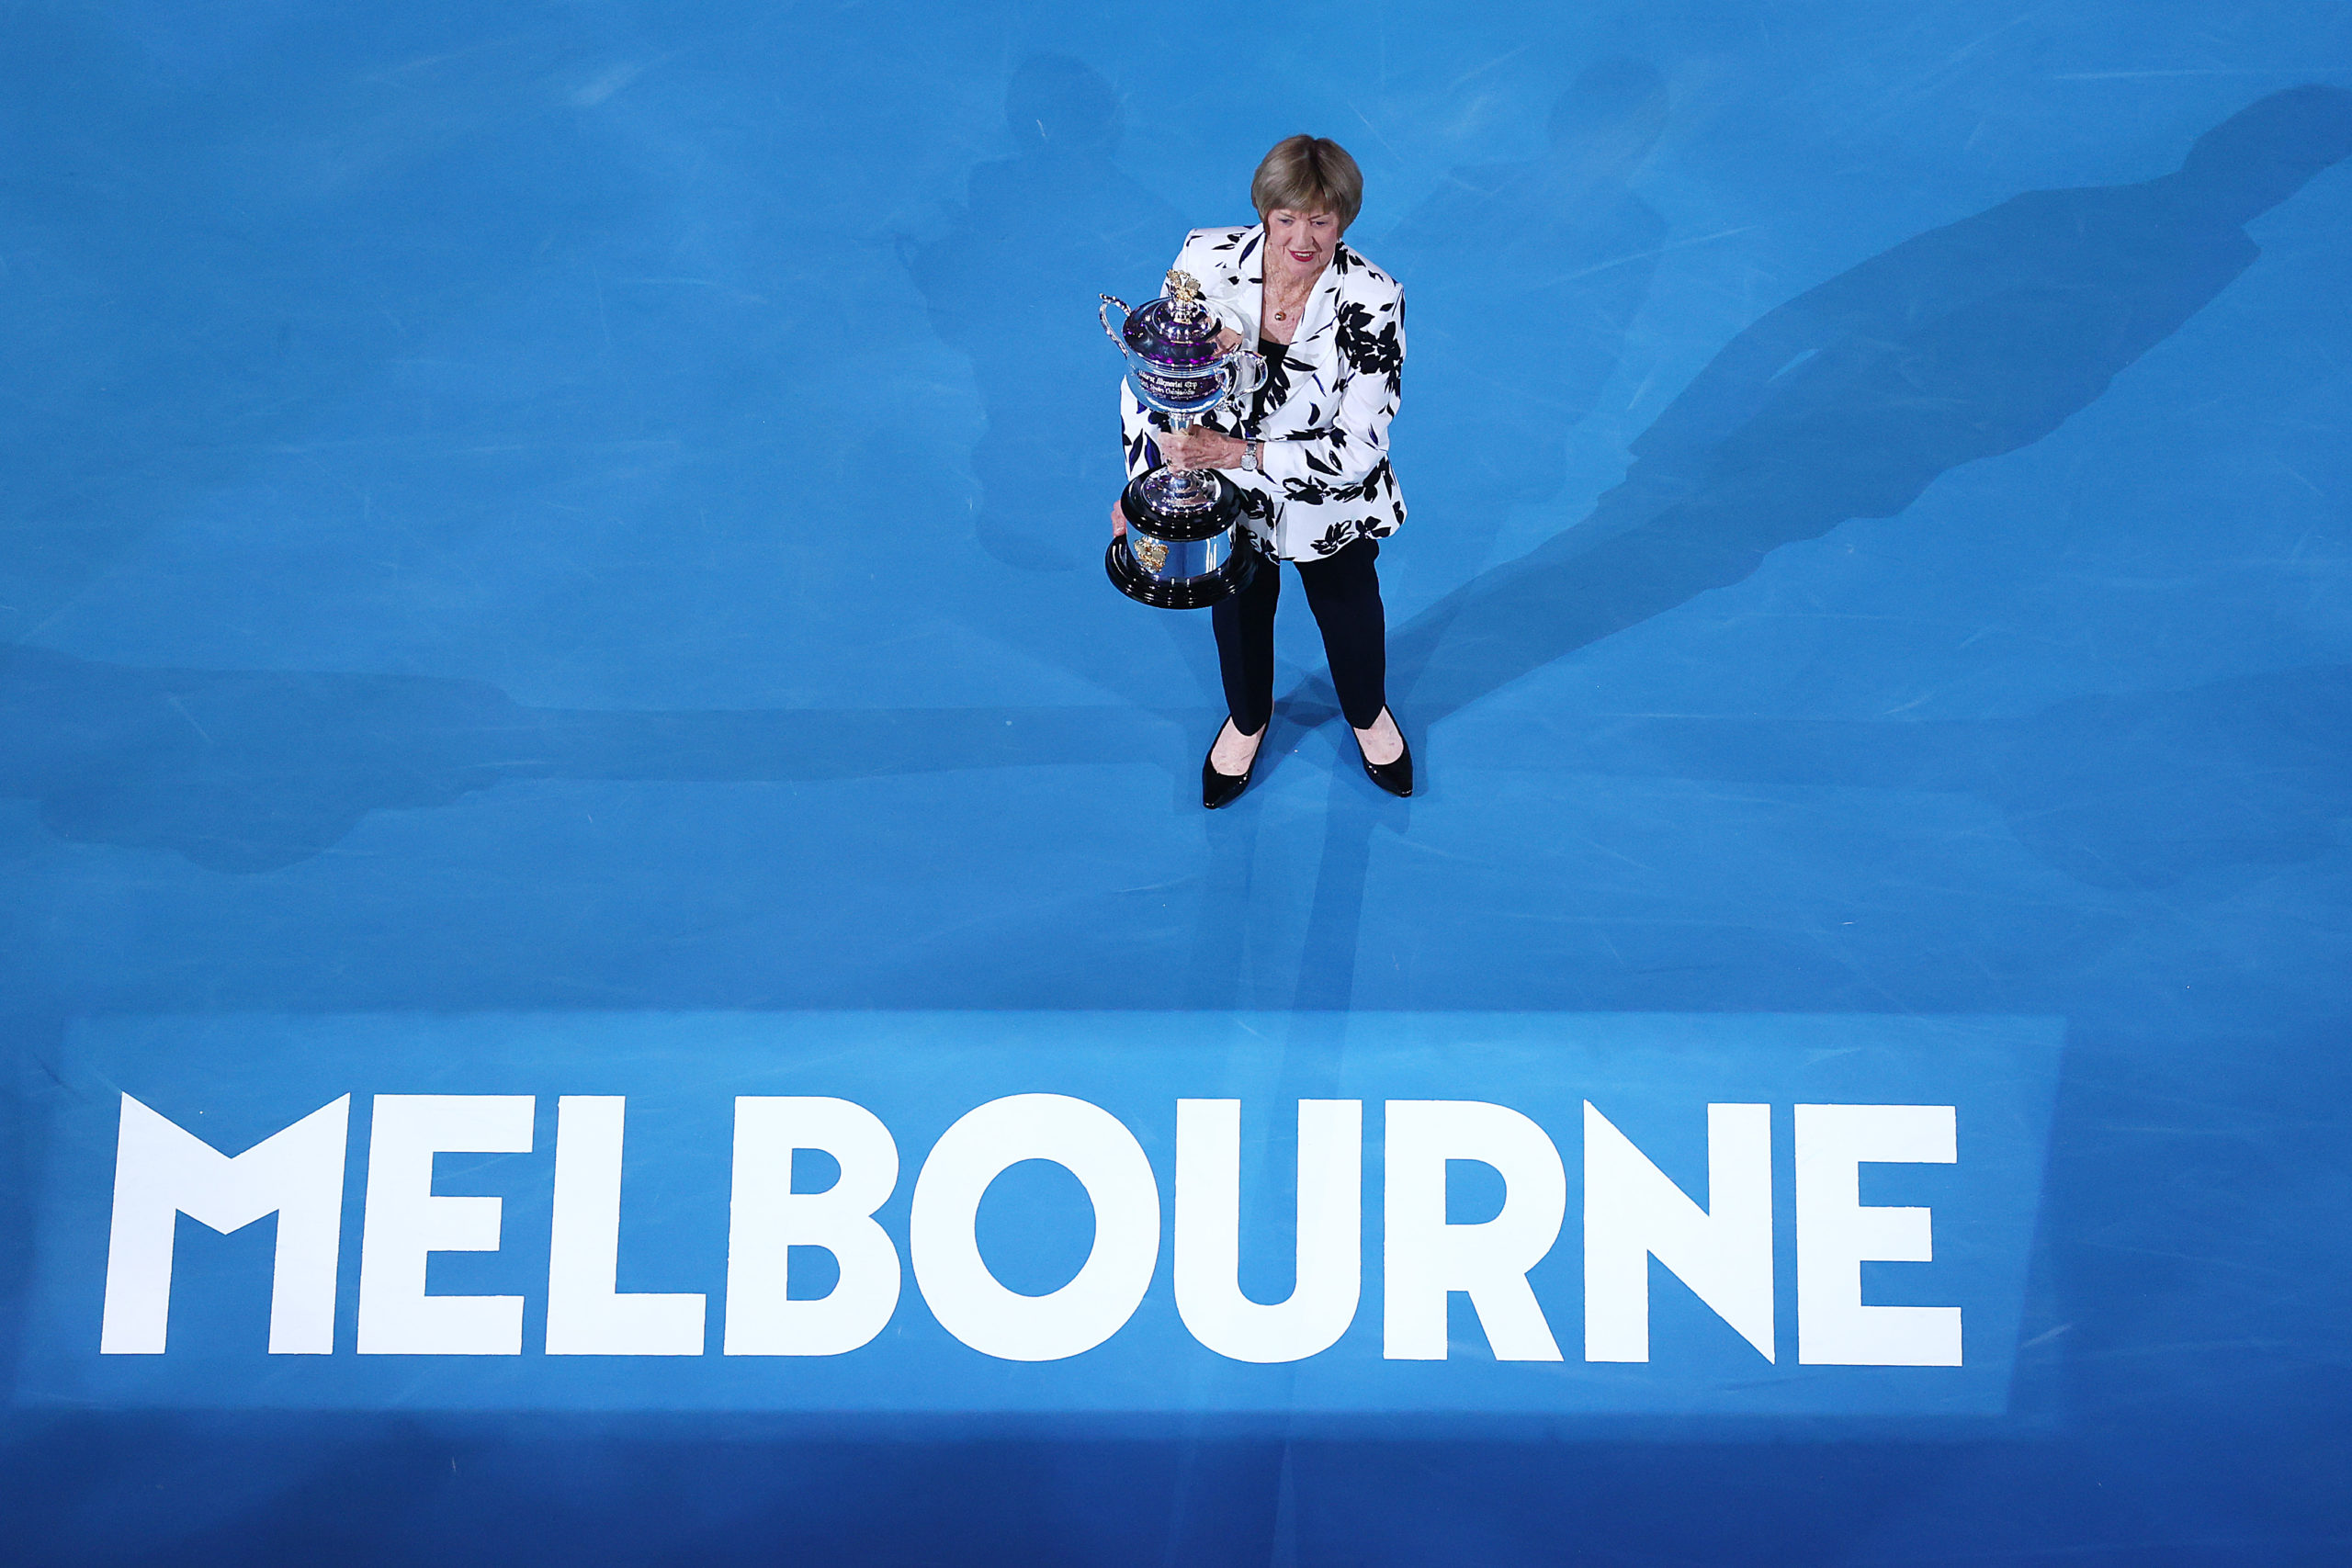 Margaret Court was met with indifference at the 2020 Australian Open in Melbourne, Australia.